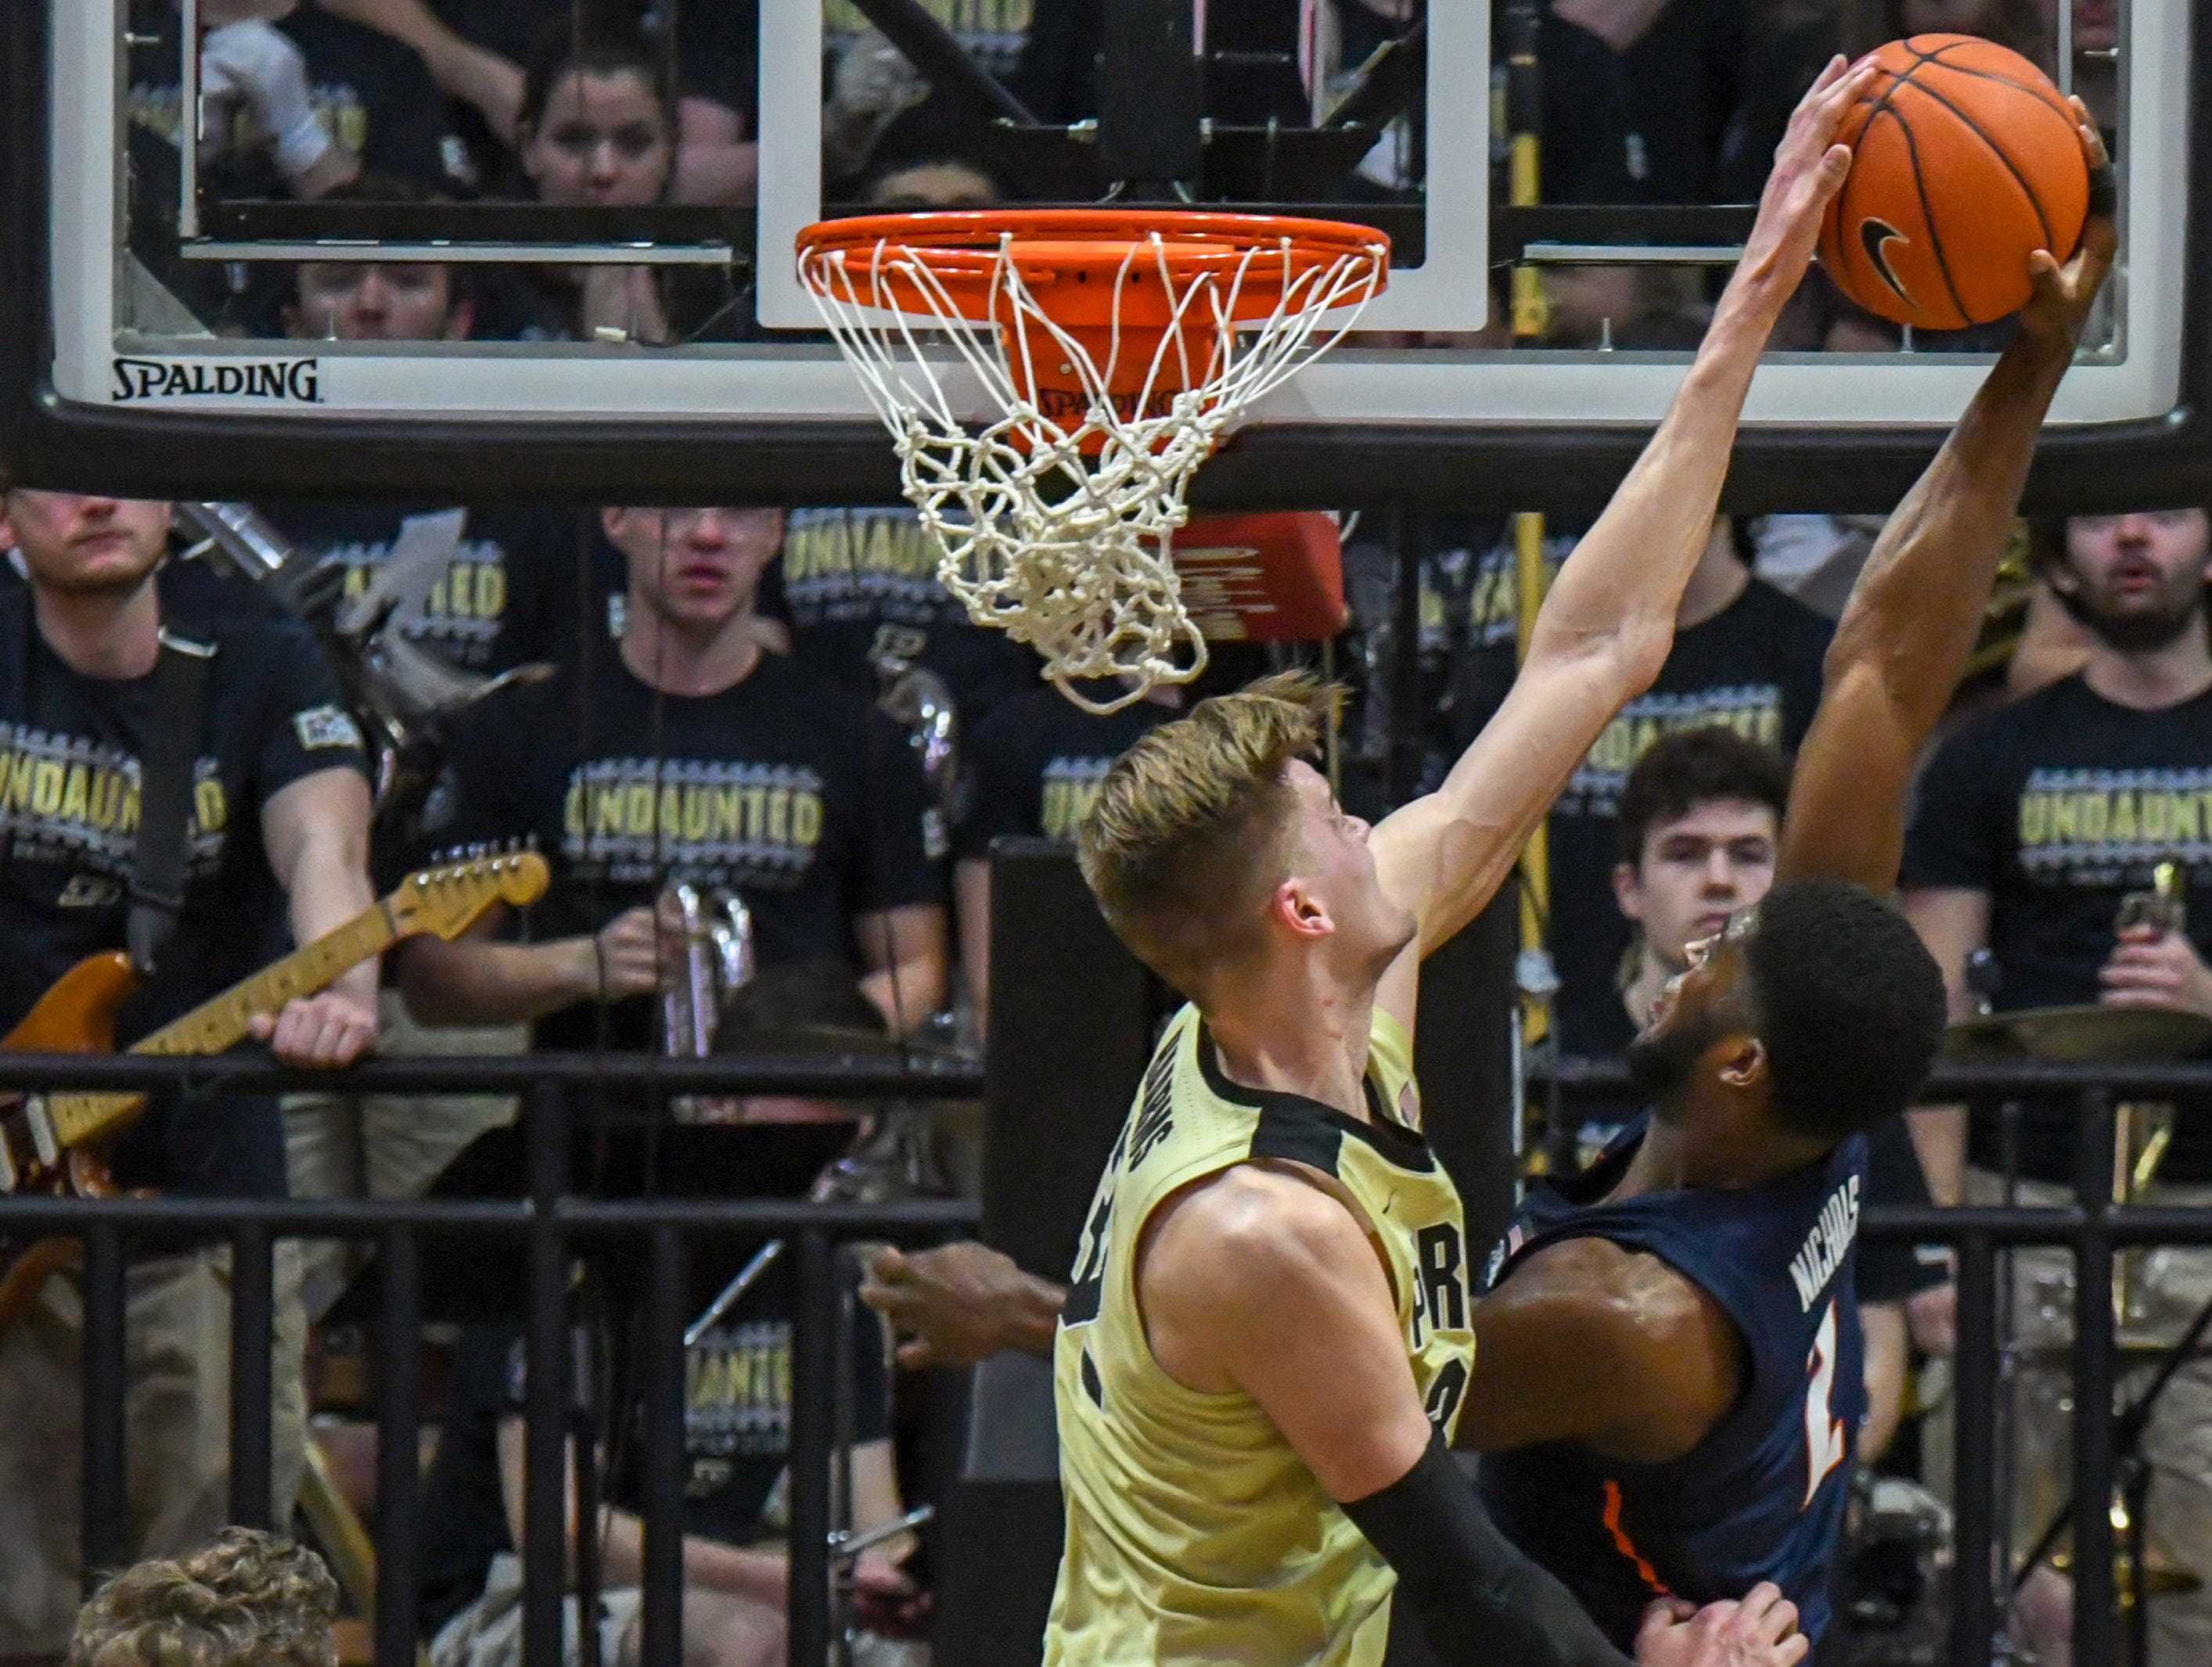 By Frank Oliver for the Journal and Courier --Purdue's Matt Haarms blocks Illinois' Kipper Nichols shot in Purdue's 73-56 win over Illinois on February 27, 2019 in West Lafayette.